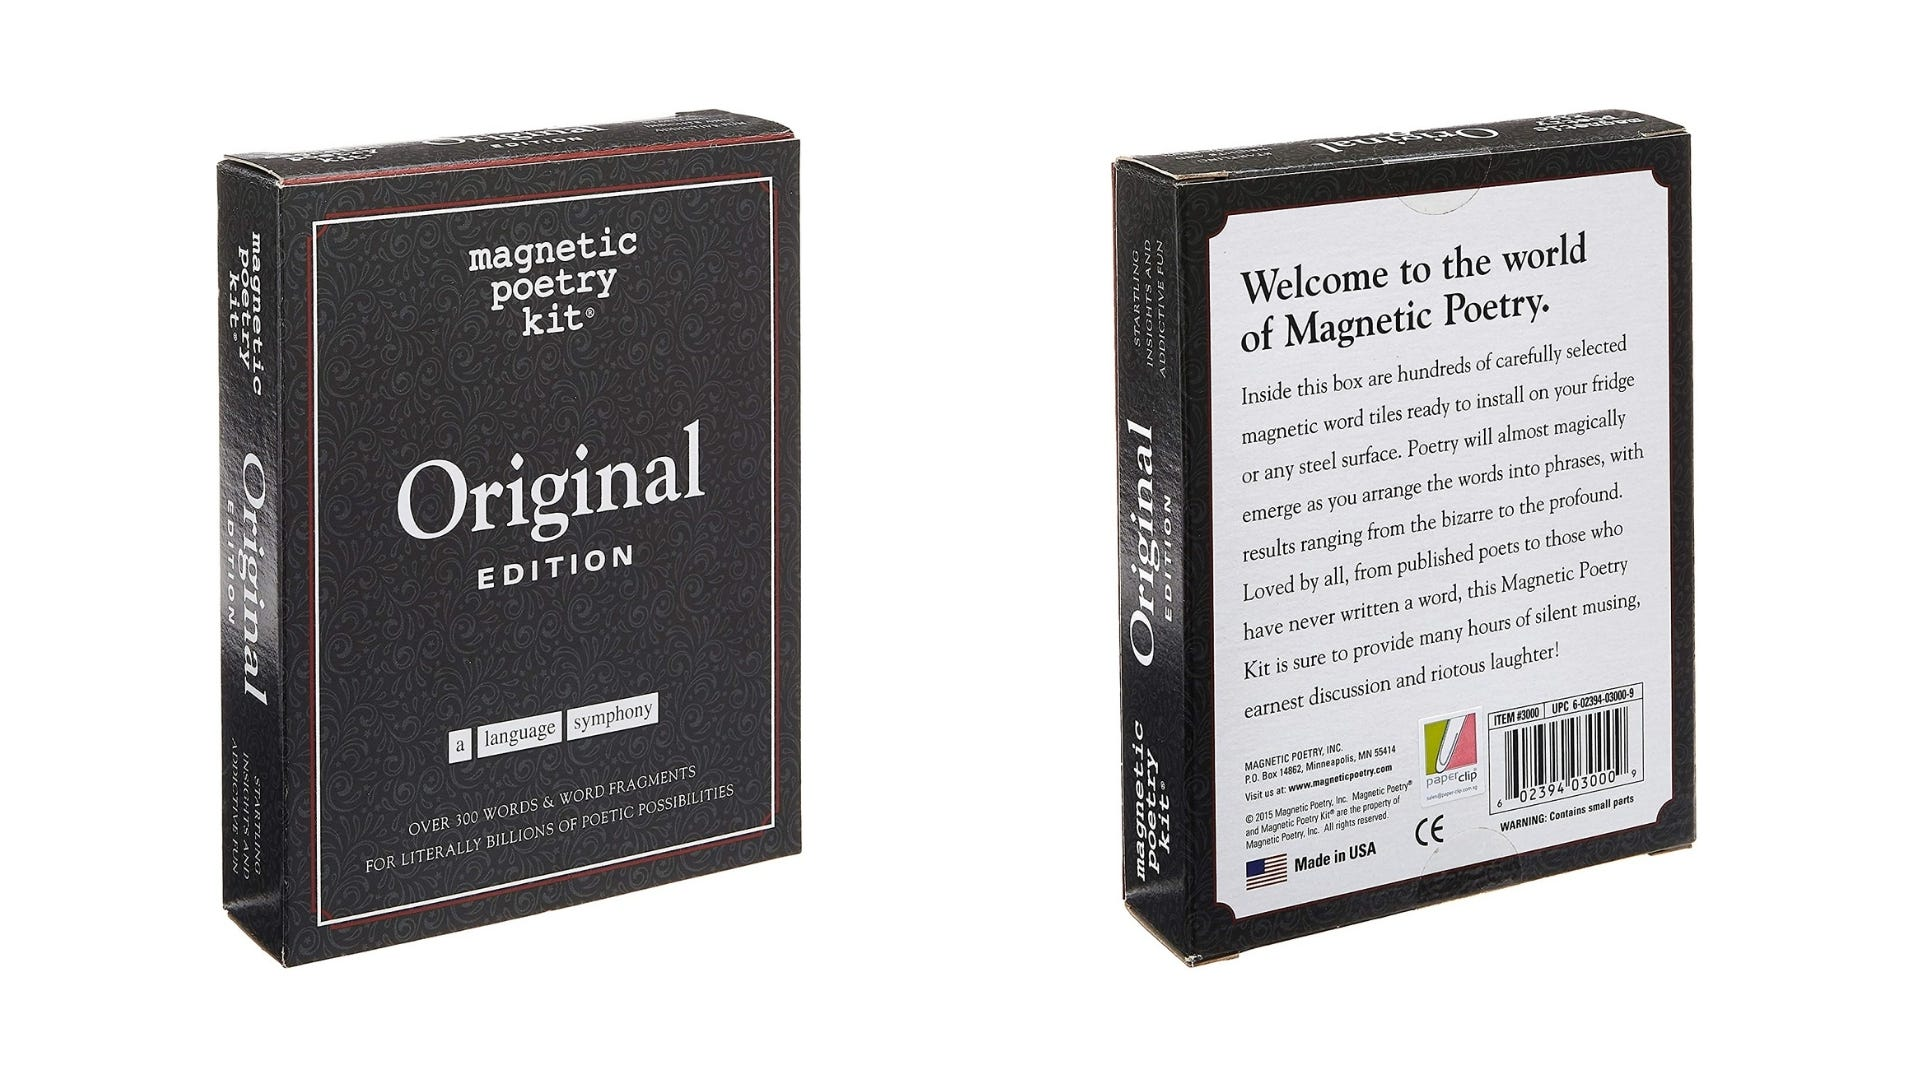 The front and back of the original Magnetic Poetry Kit